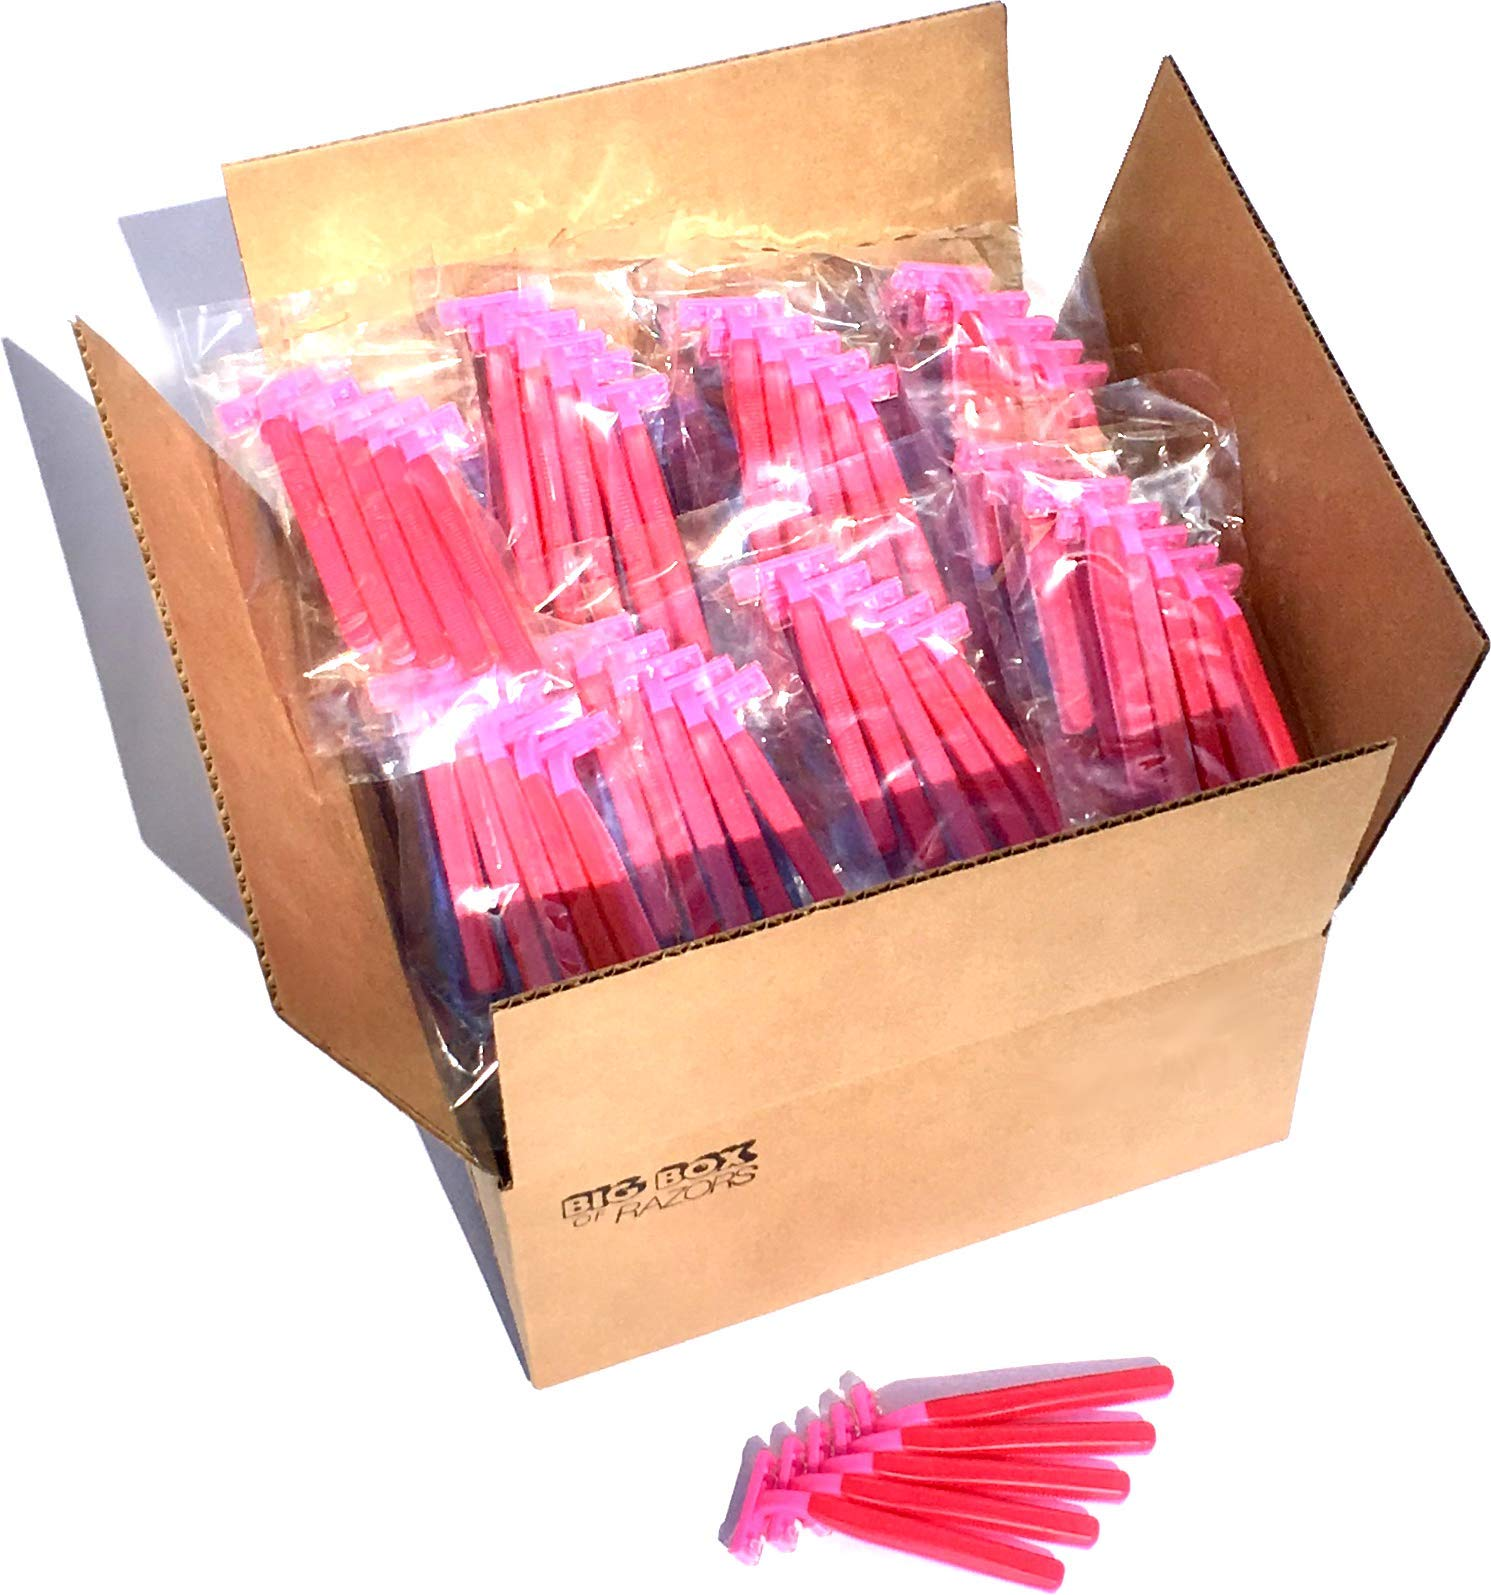 500 Box of Pink Razor Blades Disposable Stainless Steel Hospitality Quality Shavers High End Twin Blade Razors for Men and Women with Aloe Vera Lubrication Strip by Big Box of Razors